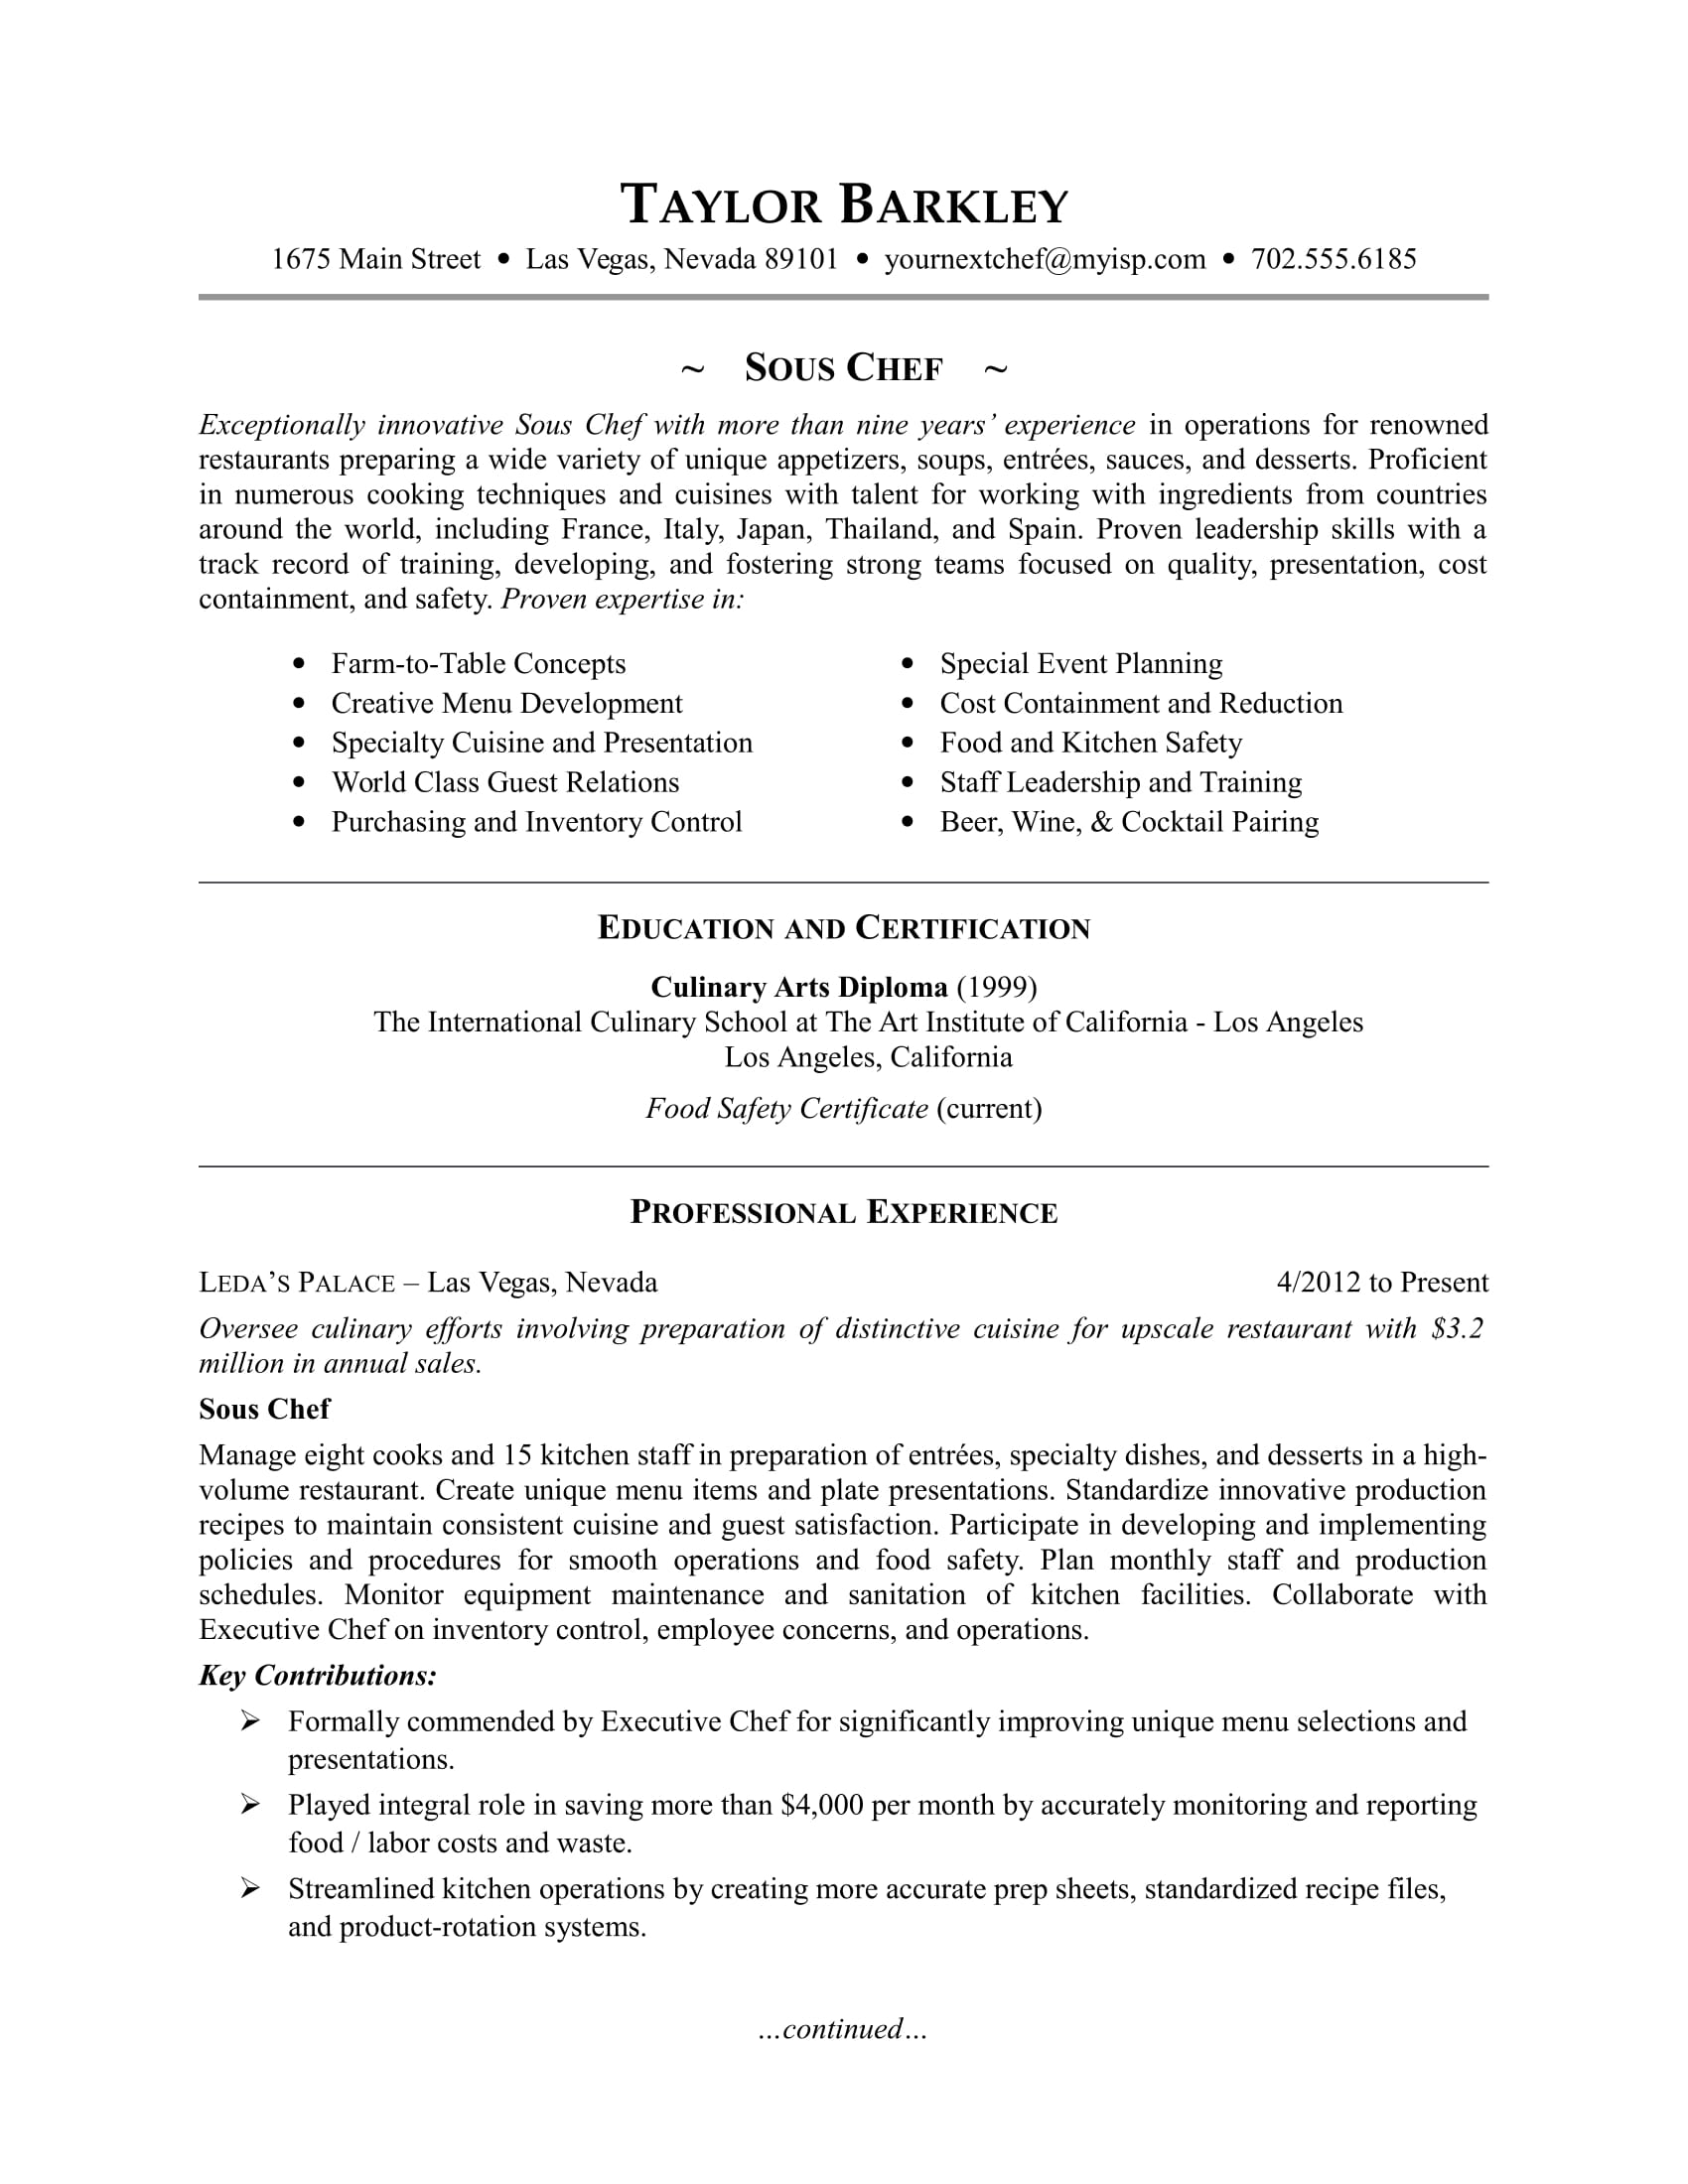 sample resume for a sous chef - Sample Chef Resume